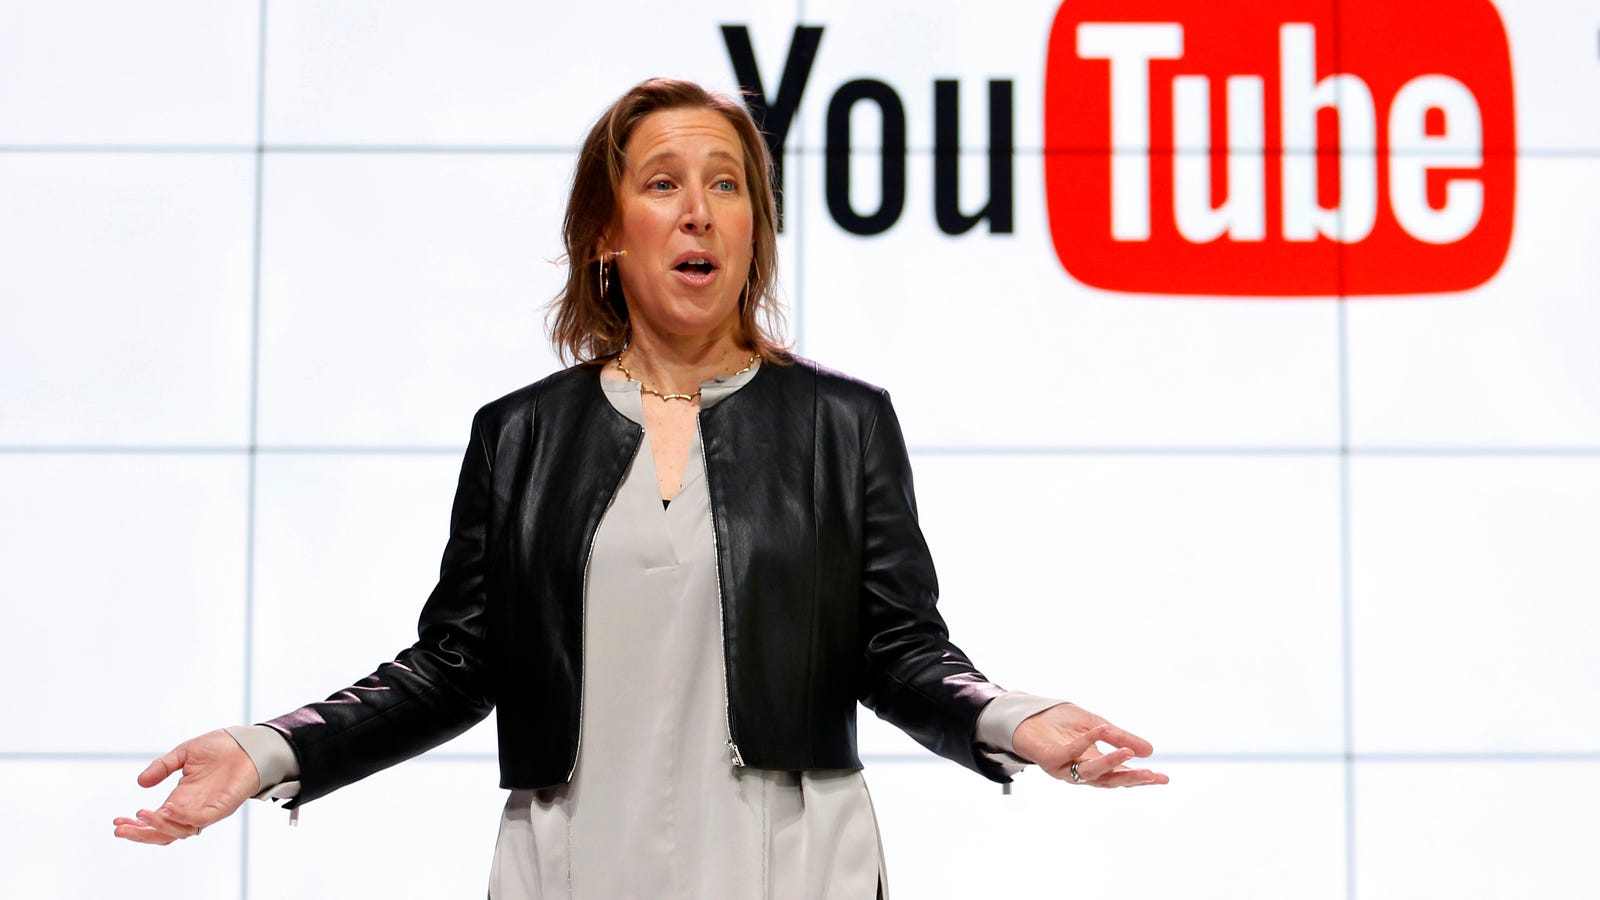 YouTube Bravely Bans Nazis Hours After Throwing LGBT Users Under the Bigot Bus